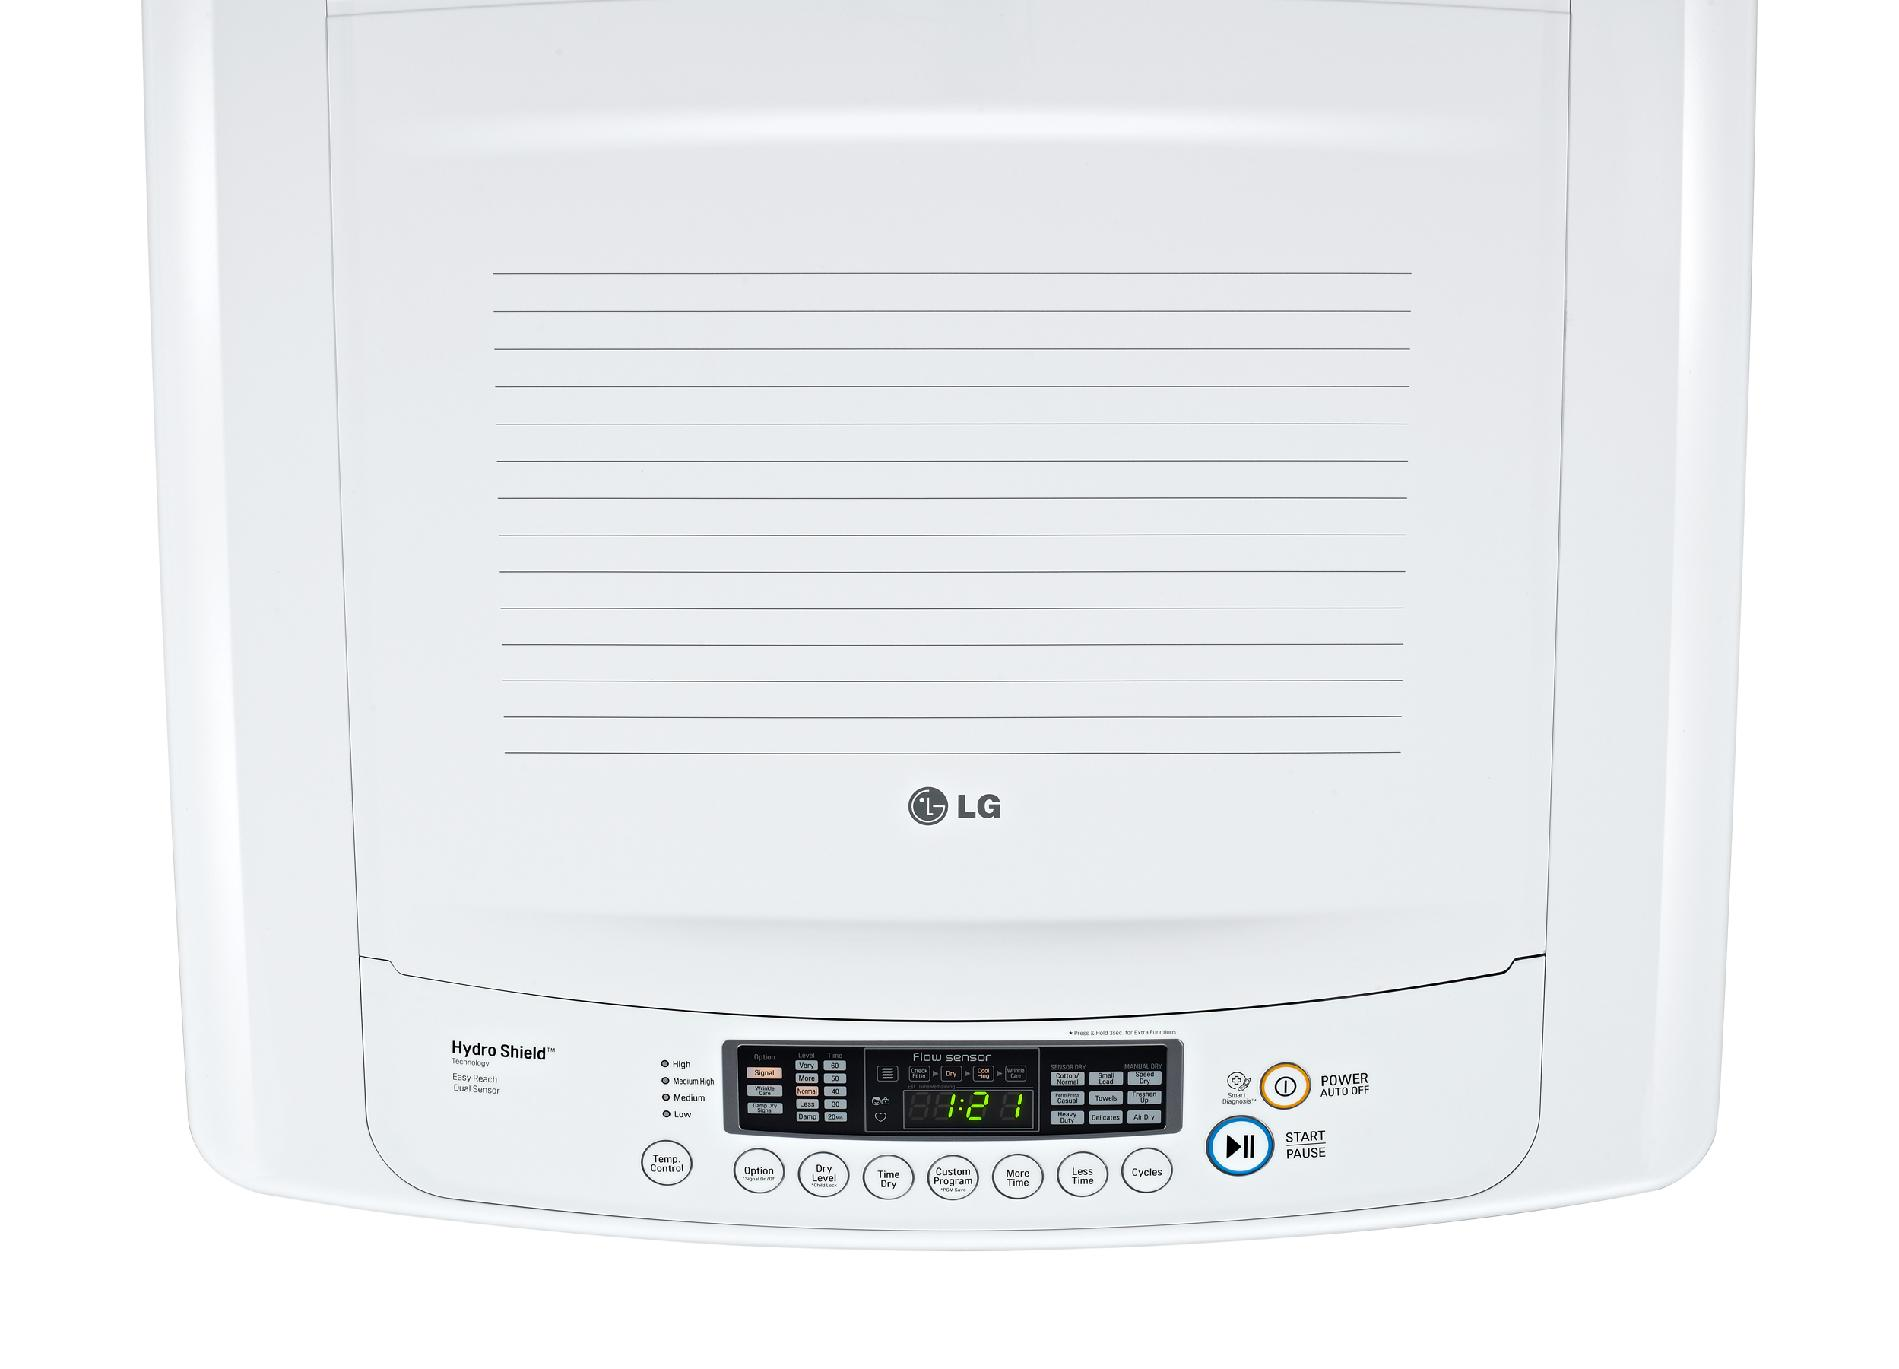 LG DLG1002W 7.3 cu. ft. Ultra-Large Capacity Front Control Gas Dryer w/ Sensor Dry - White